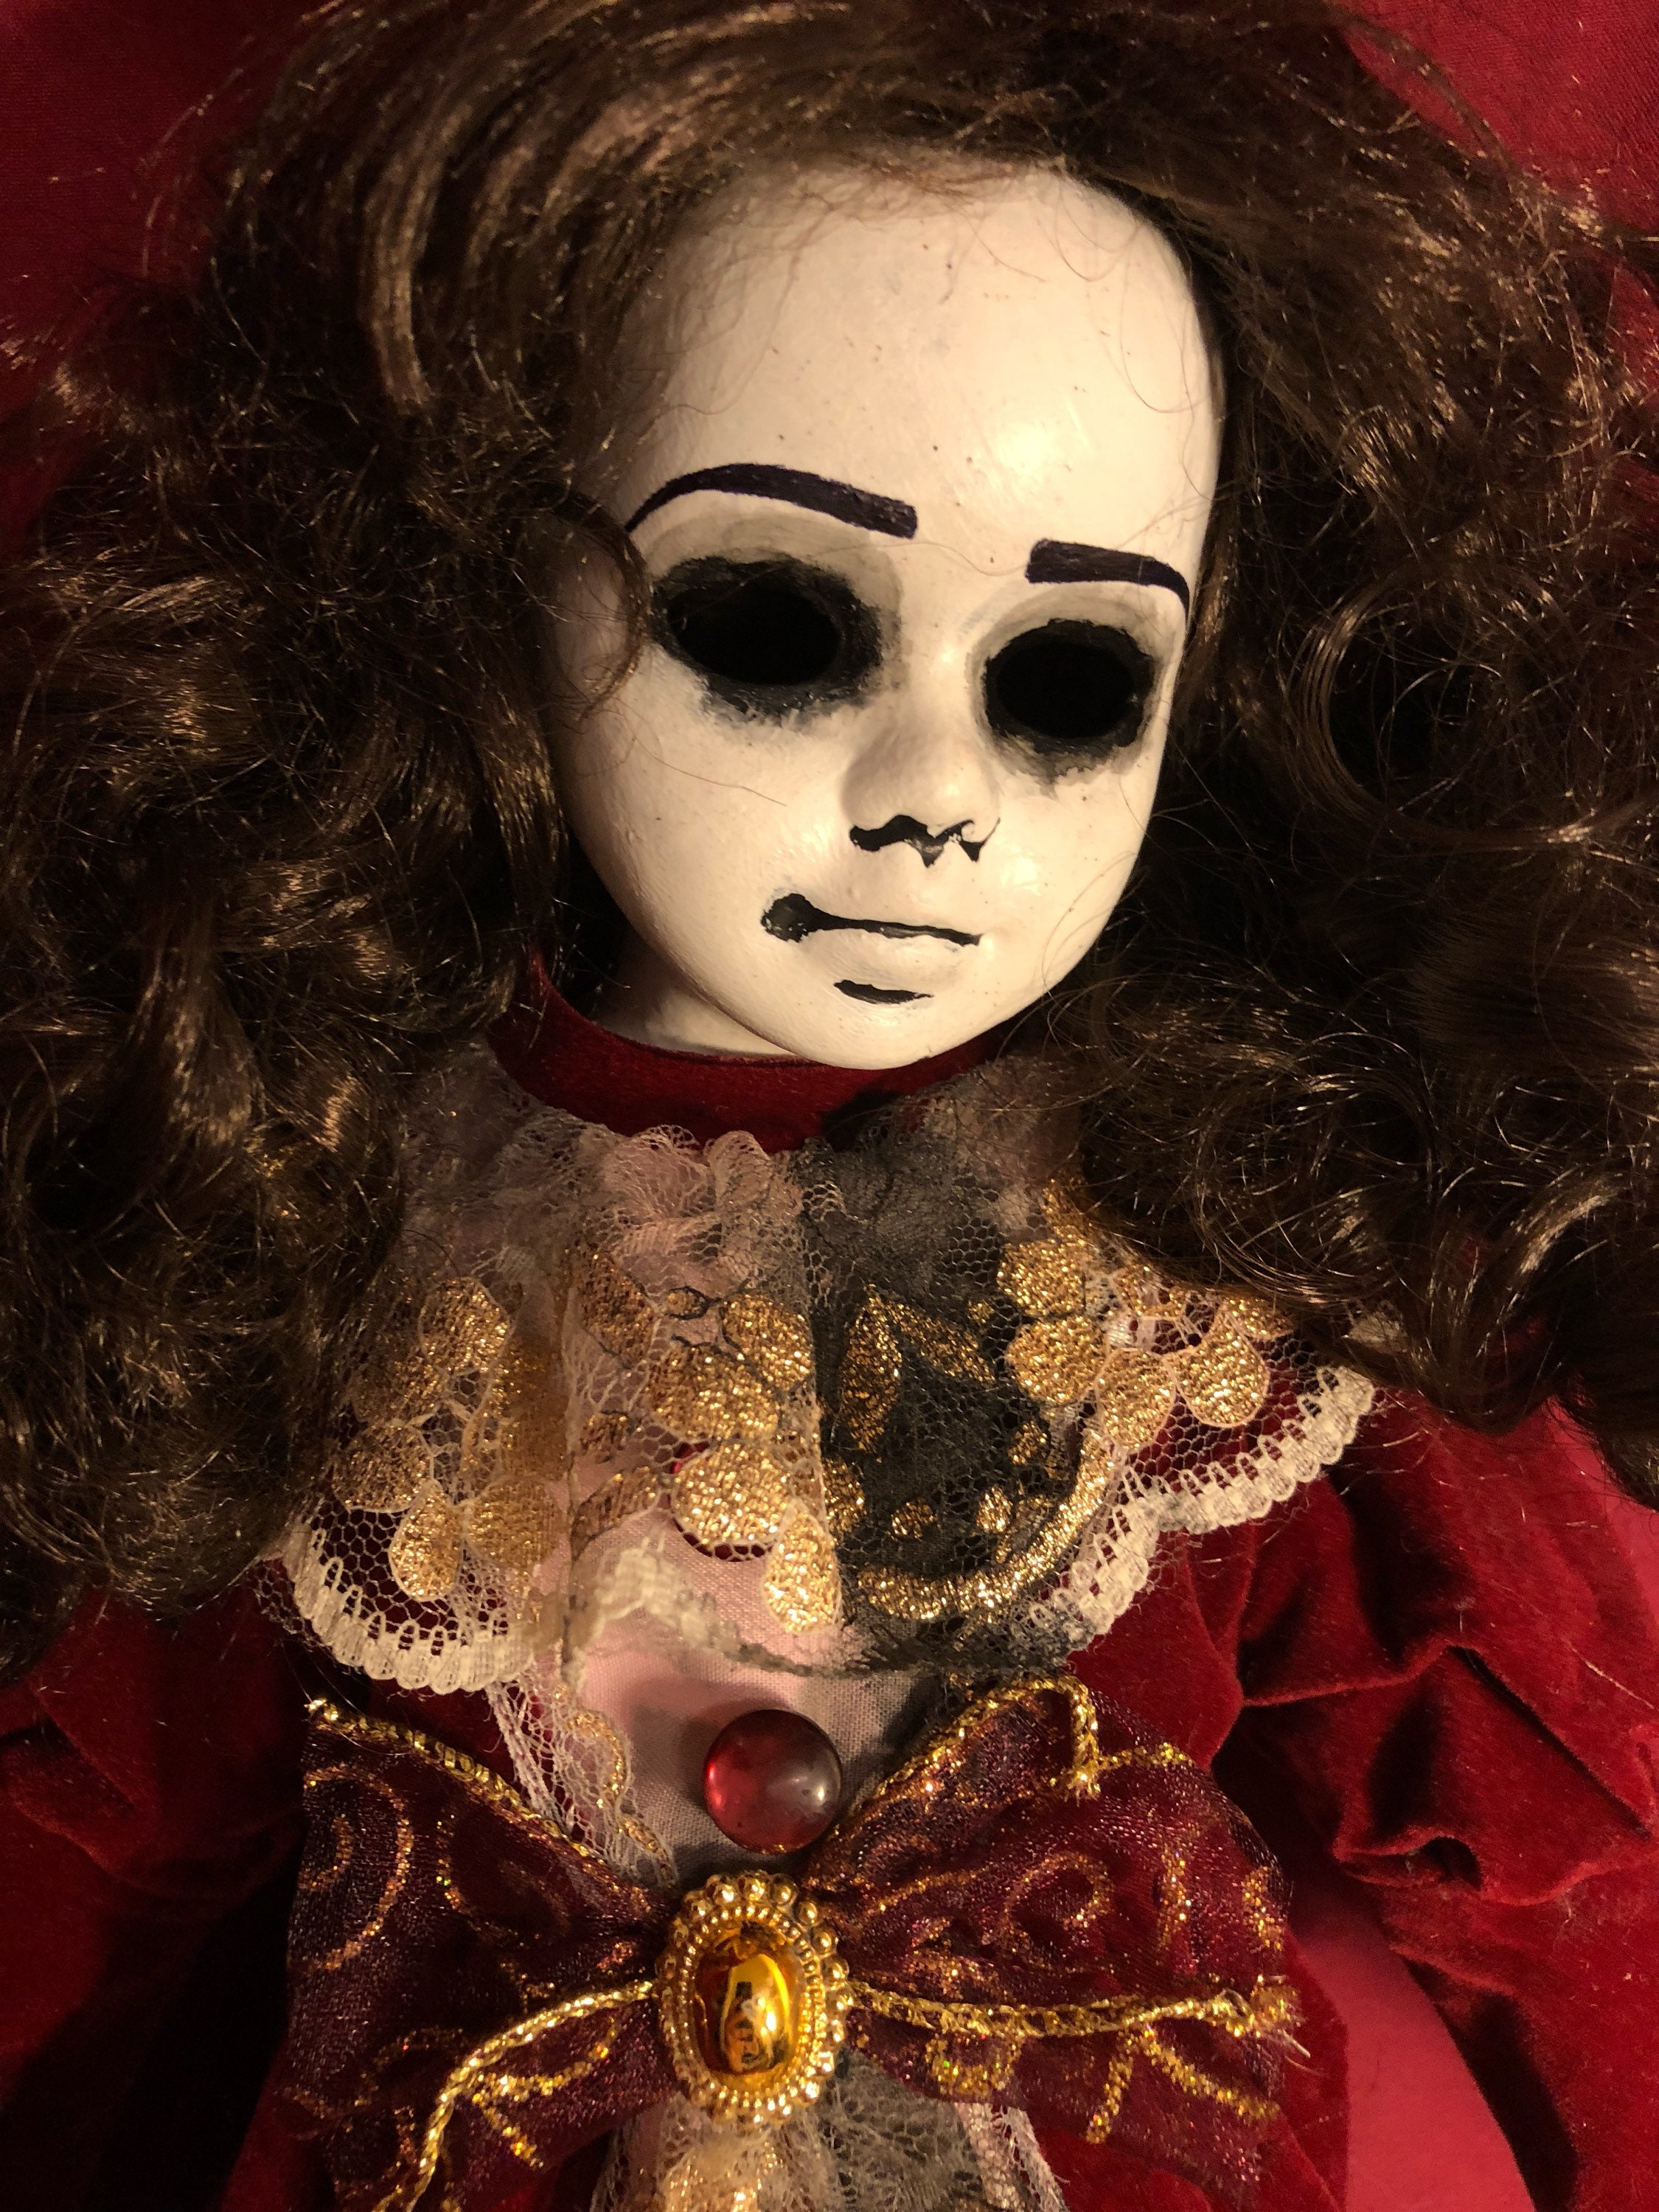 art doll ooak doll halloween doll horror doll creepy doll gothic doll porcelain doll doll hollow eyes